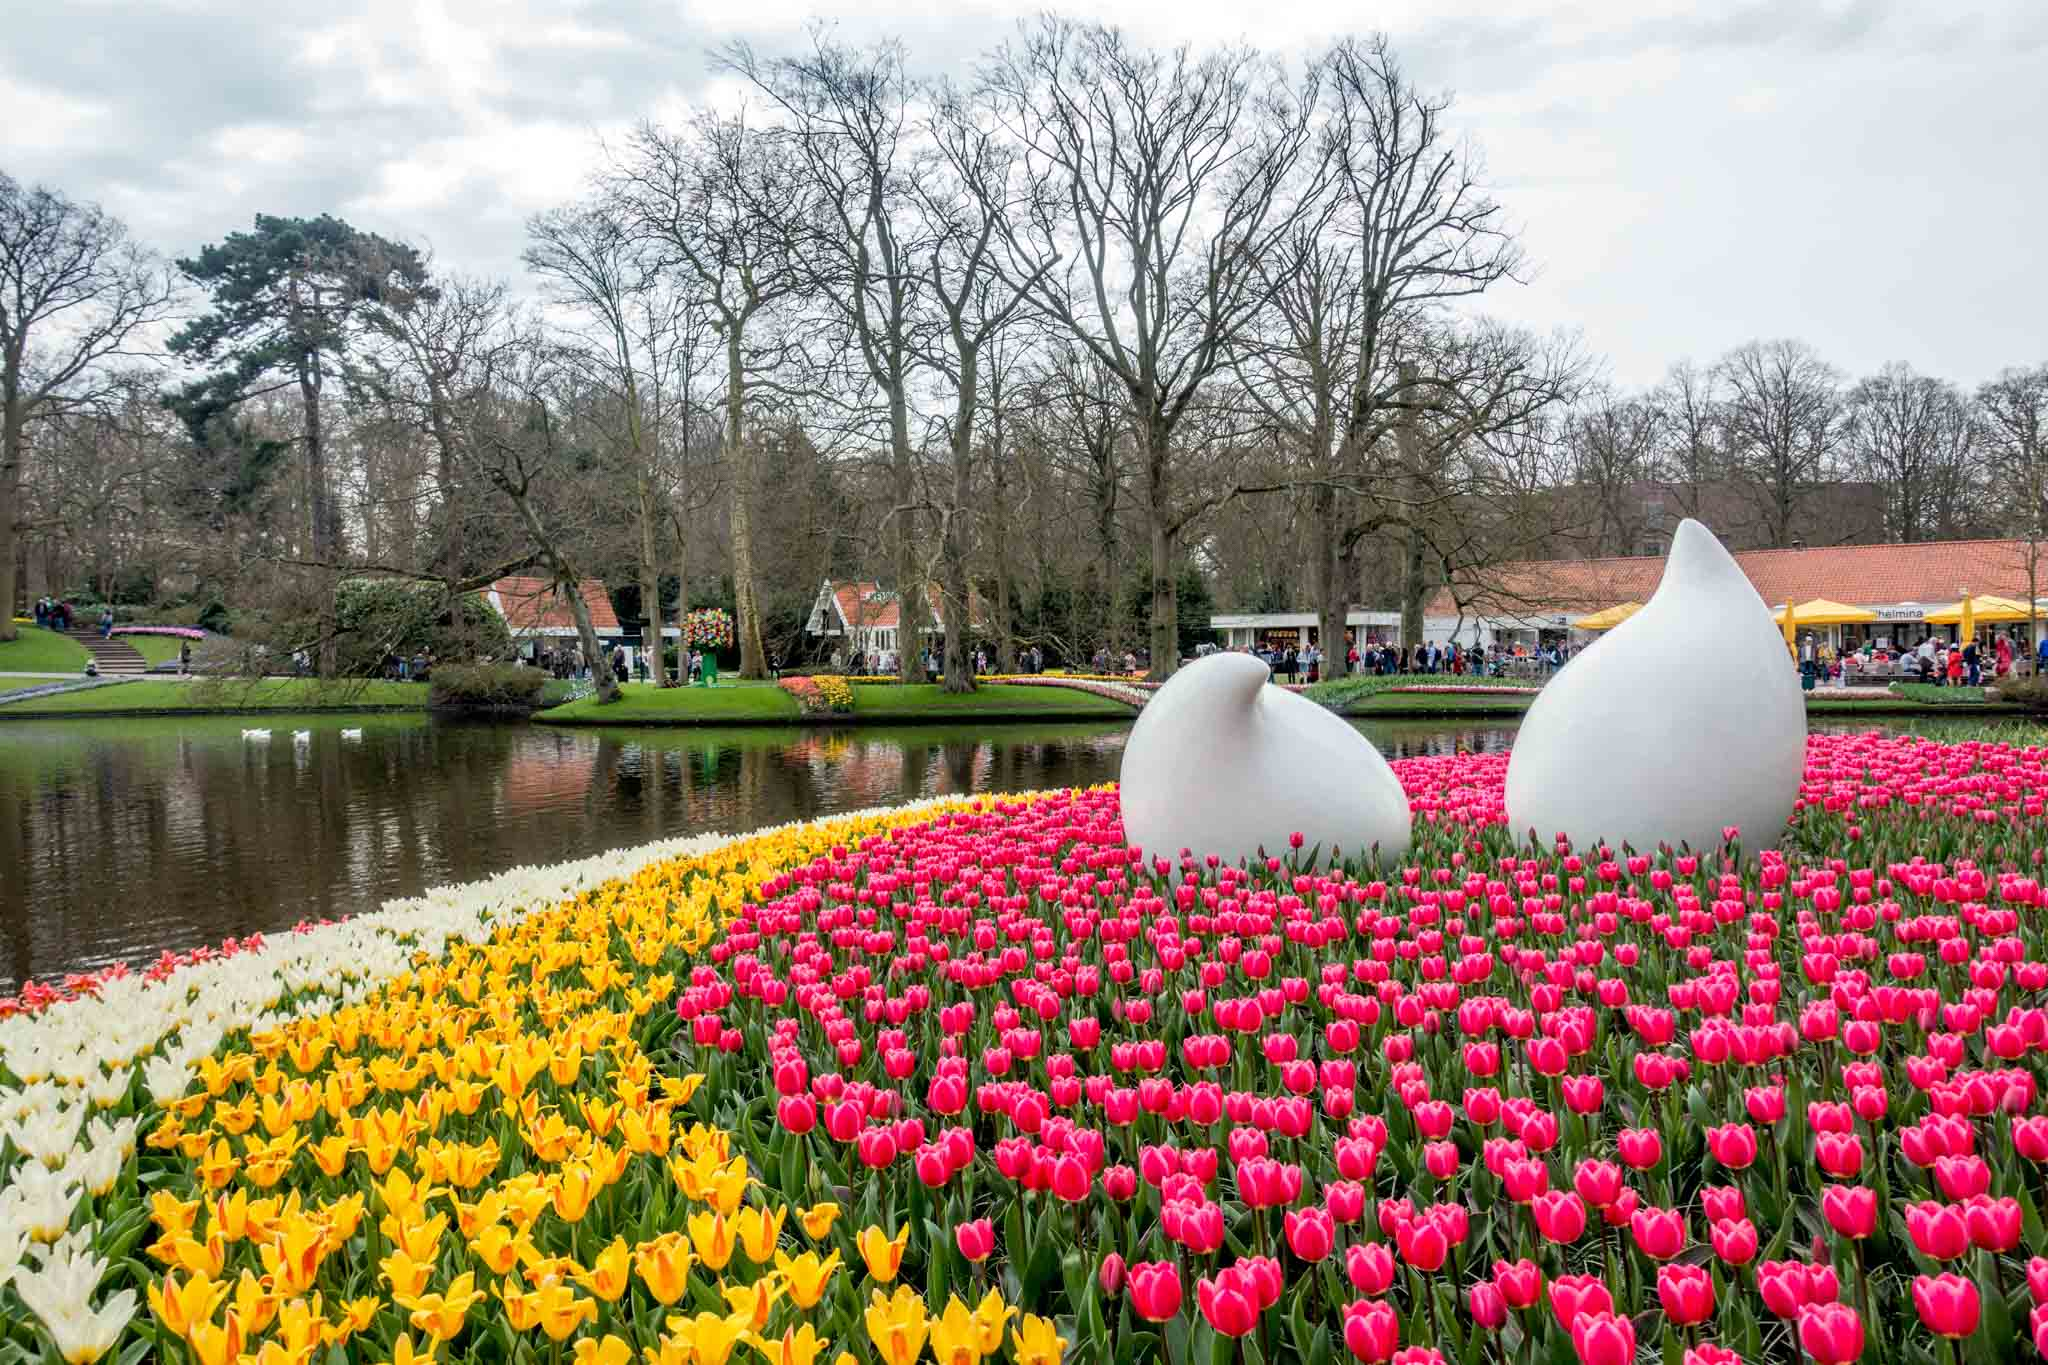 Keukenhof gardens is one of the most famous attractions near Rotterdam